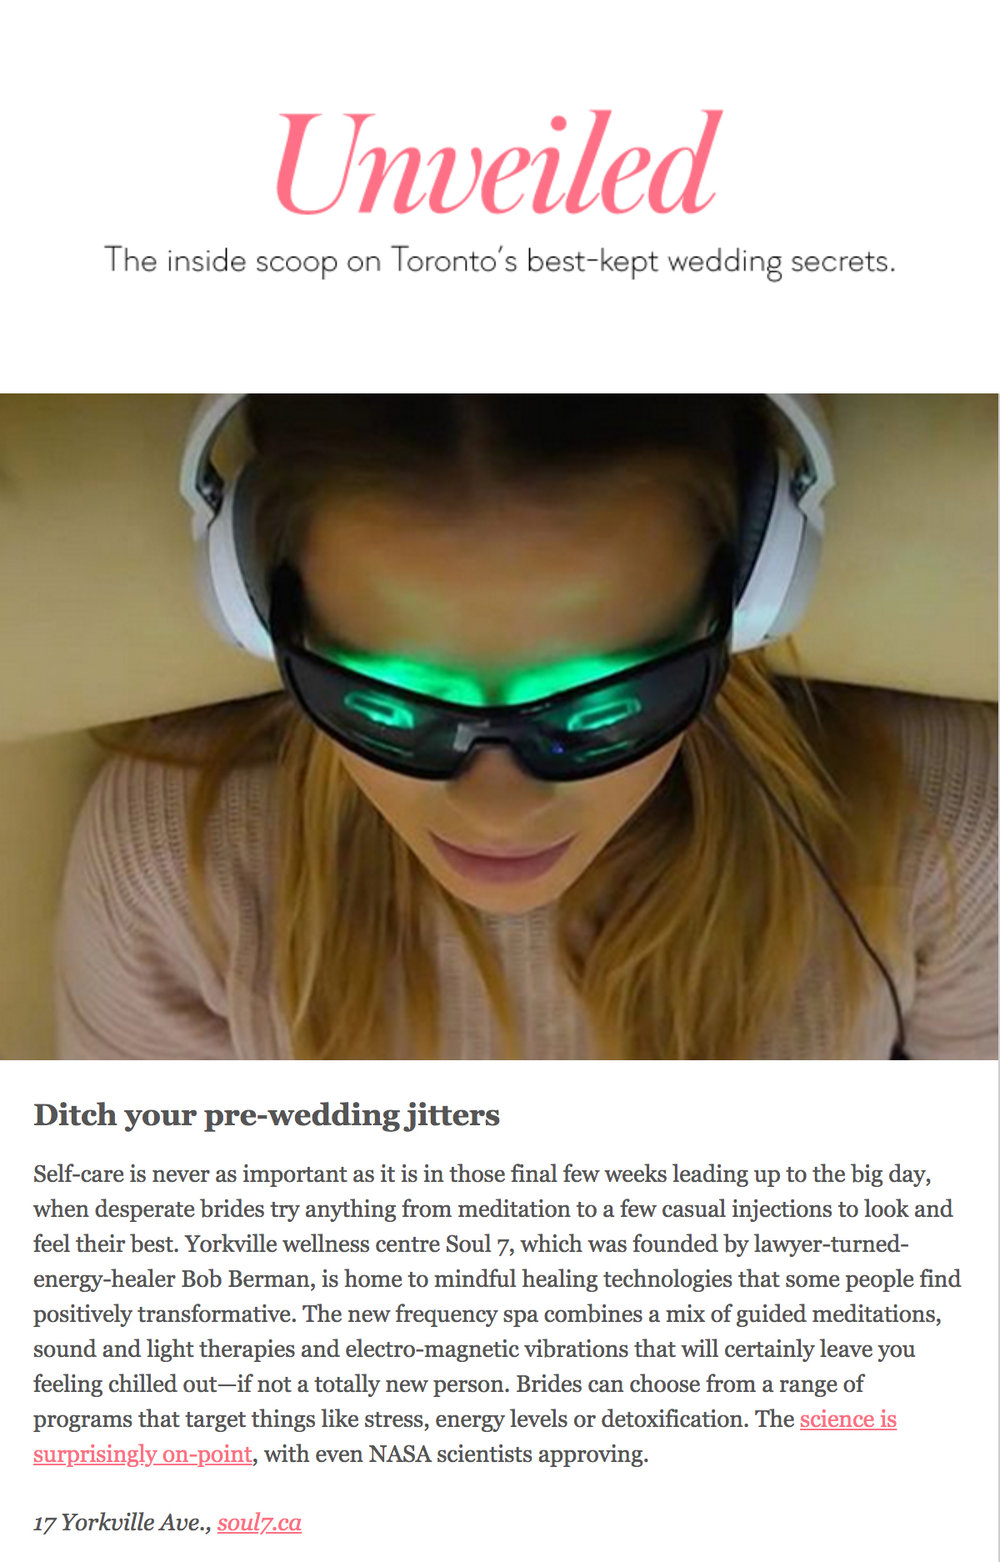 Soul 7 featured on  WeddingBells Unveiled .